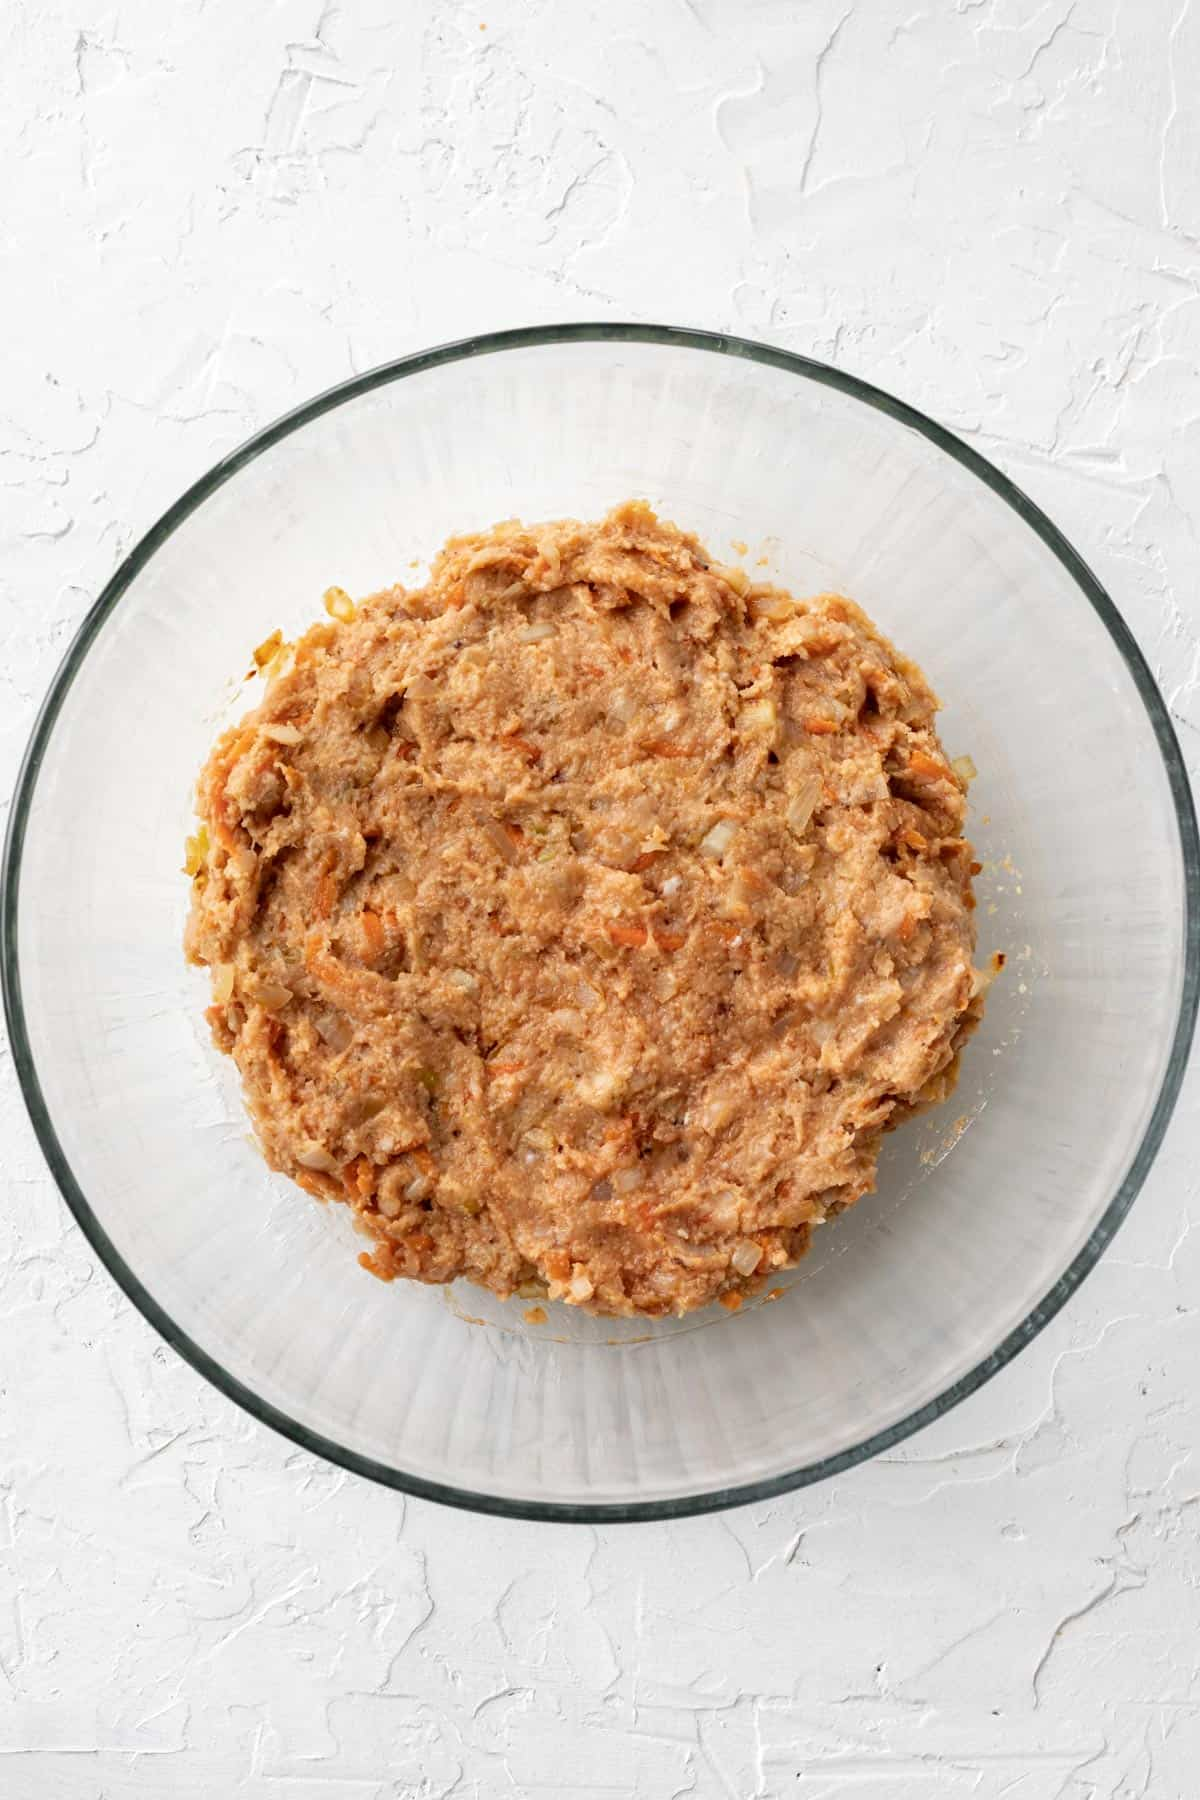 Ground chicken mixed with eggs, breadcrumbs, milk, ketchup, and vegetables in a glass bowl.